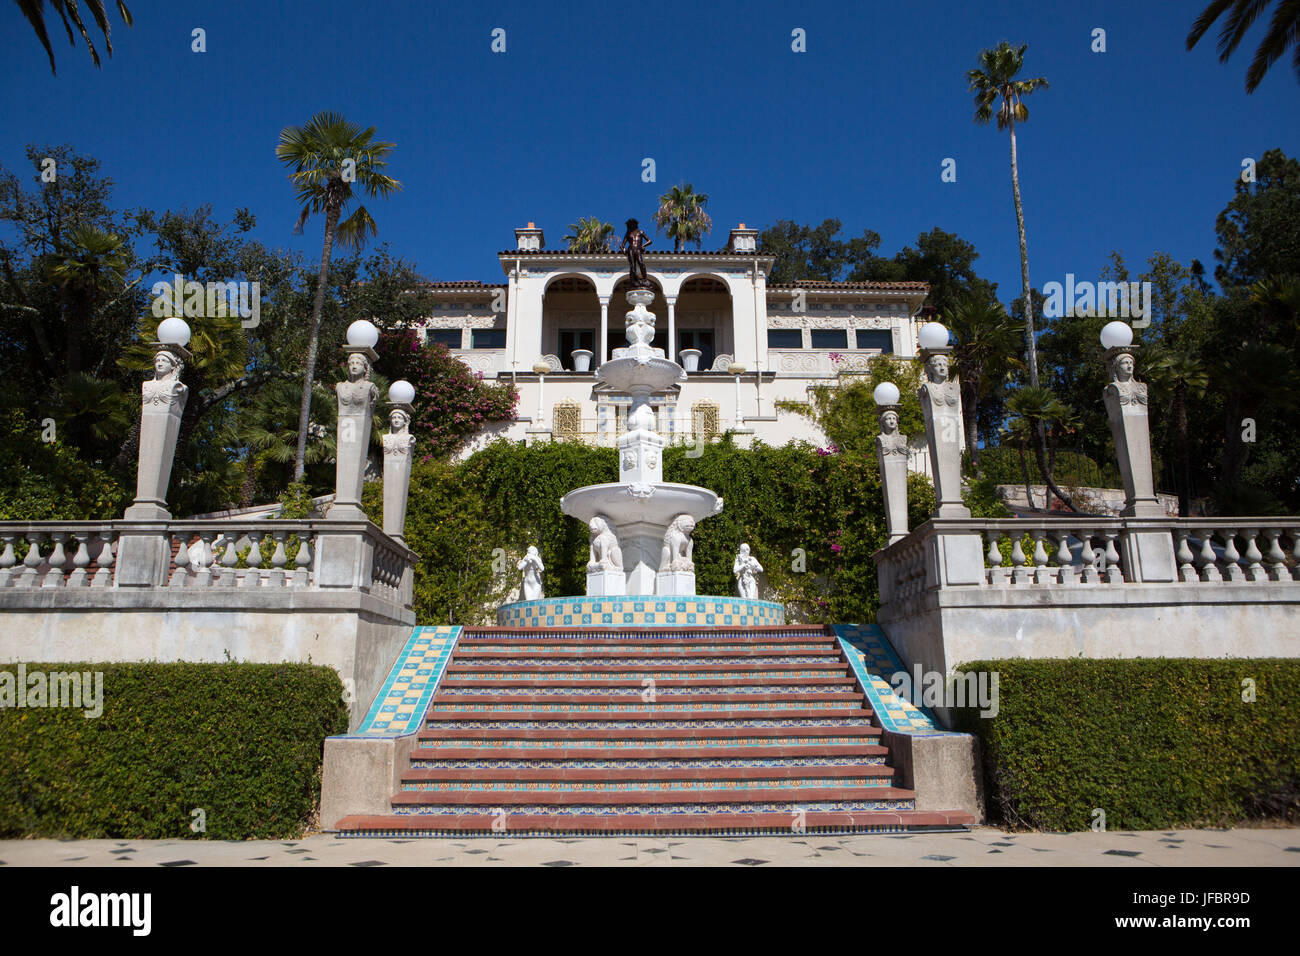 The staircase leading from cottage House A, Casa del Mar, to the Neptune Pool, fountain and veranda at Hearst Castle. - Stock Image